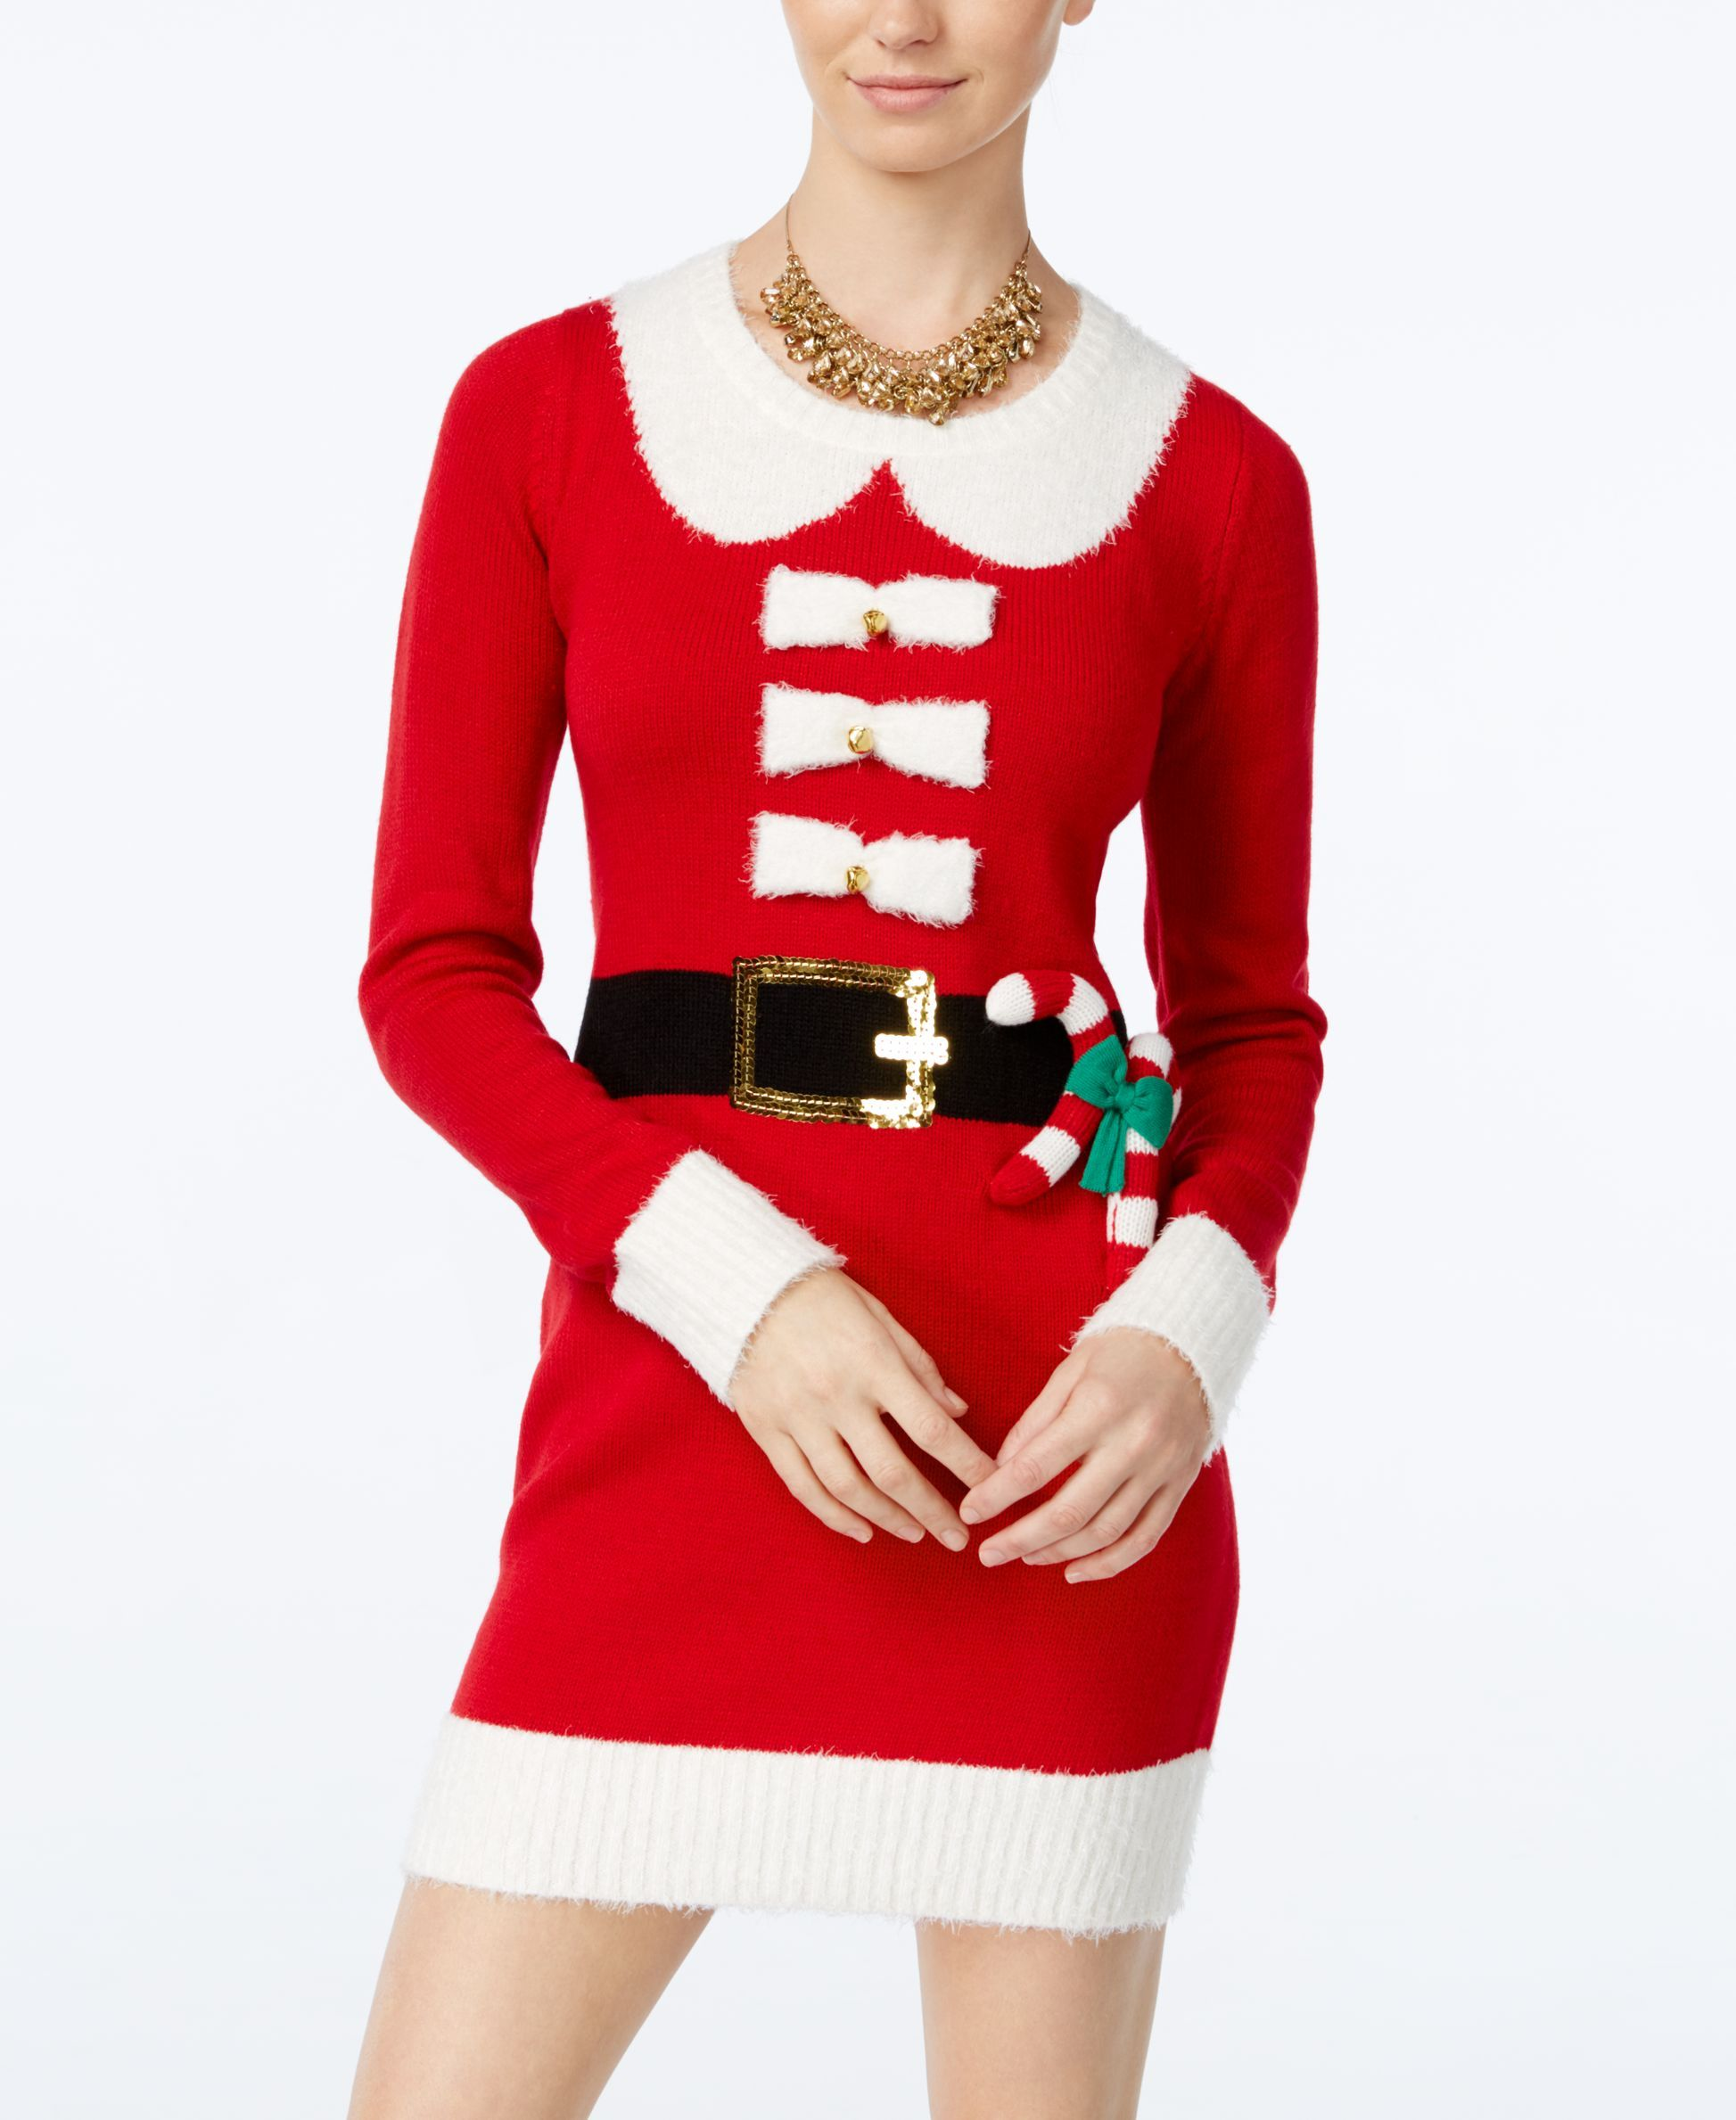 86fa28ad06cf Hooked Up by Iot Juniors' Mrs. Claus Holiday Sweater Dress | Products